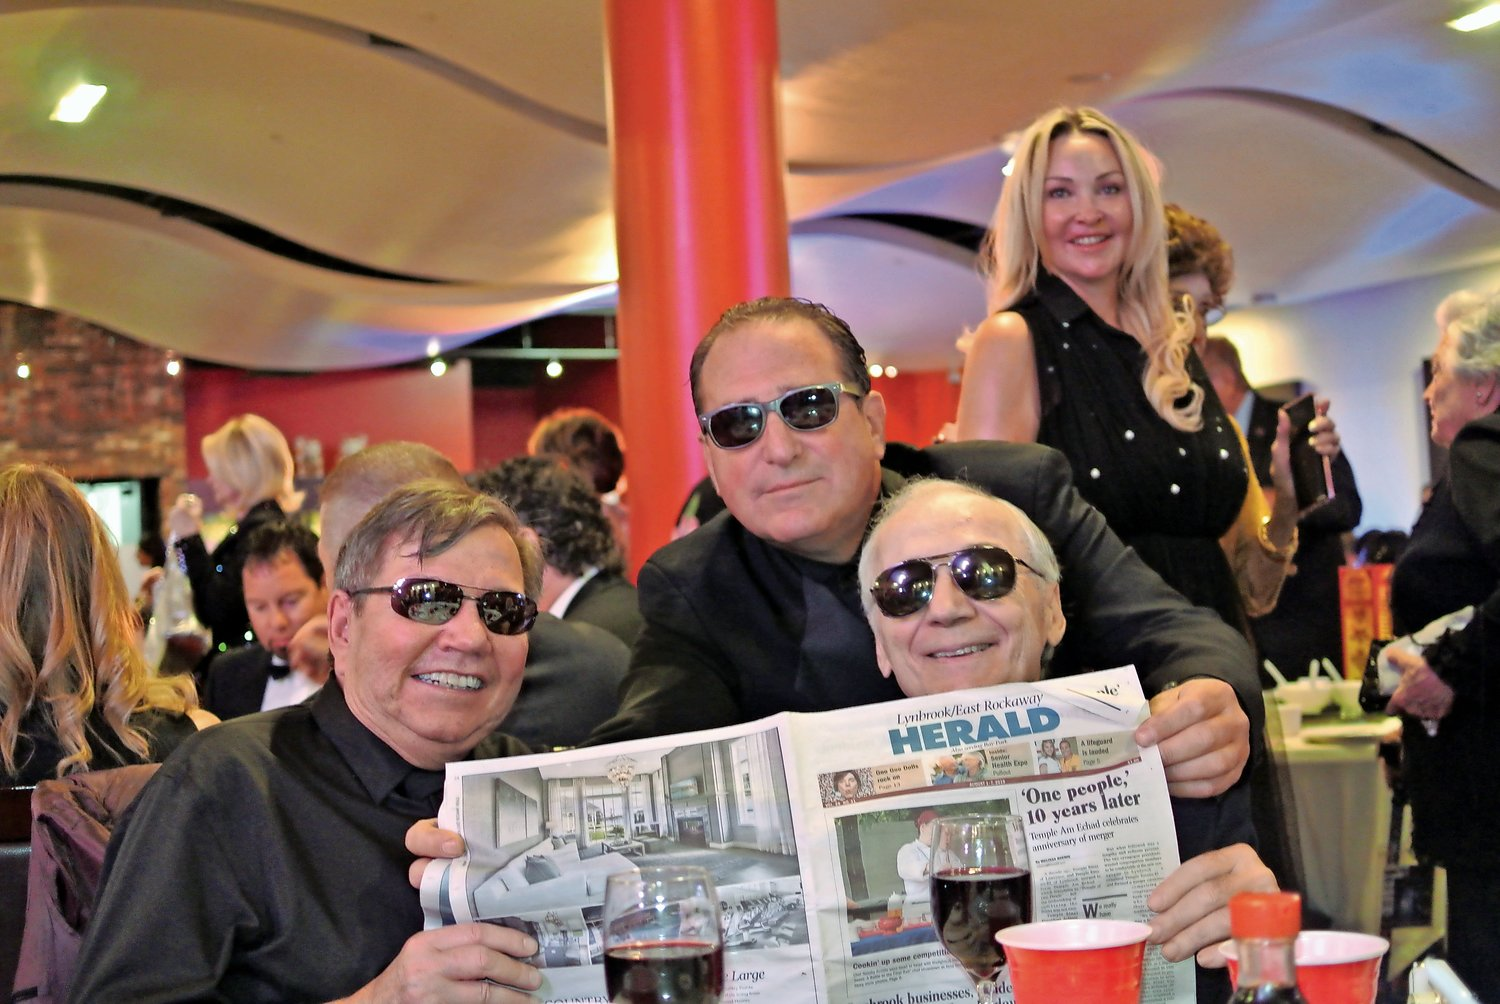 Mark Goldman, center, caught up on the local news at the 2019 Action On Film International Film Festival in Las Vegas in July. With him were screenwriters Harold Brown, left, and Matt DeGennaro.